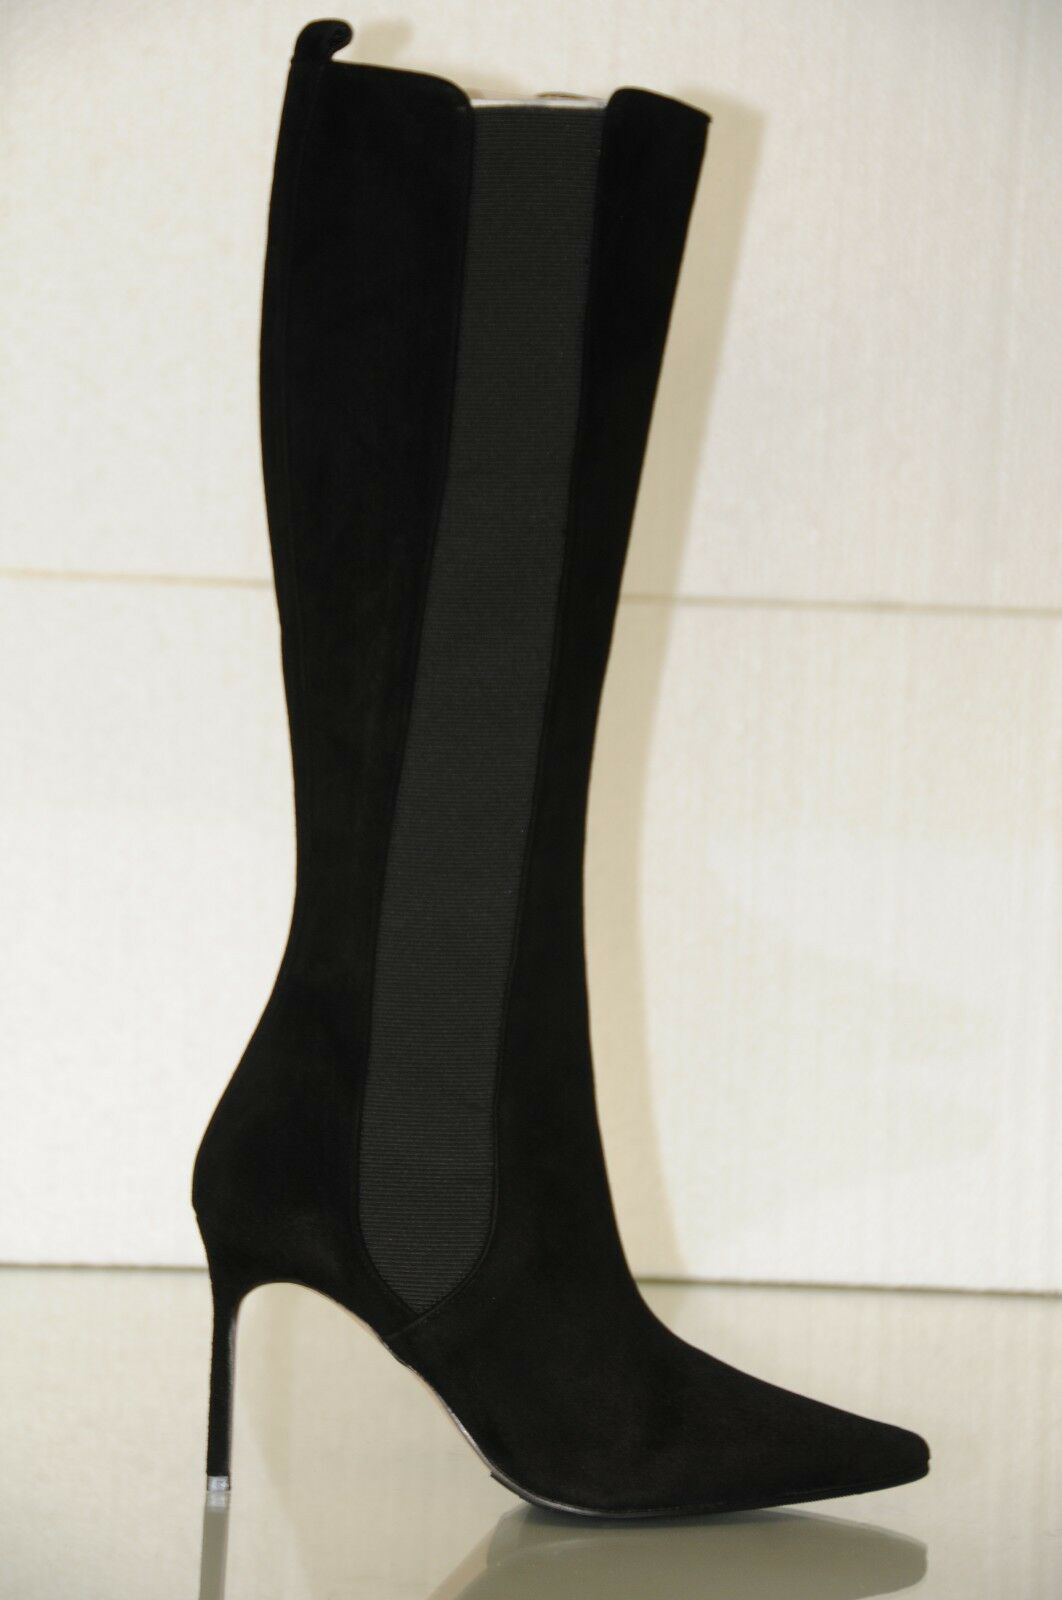 New MANOLO BLAHNIK TUNGADEHI BB Black Suede Stretch Boots SHOES 37 39 40.5